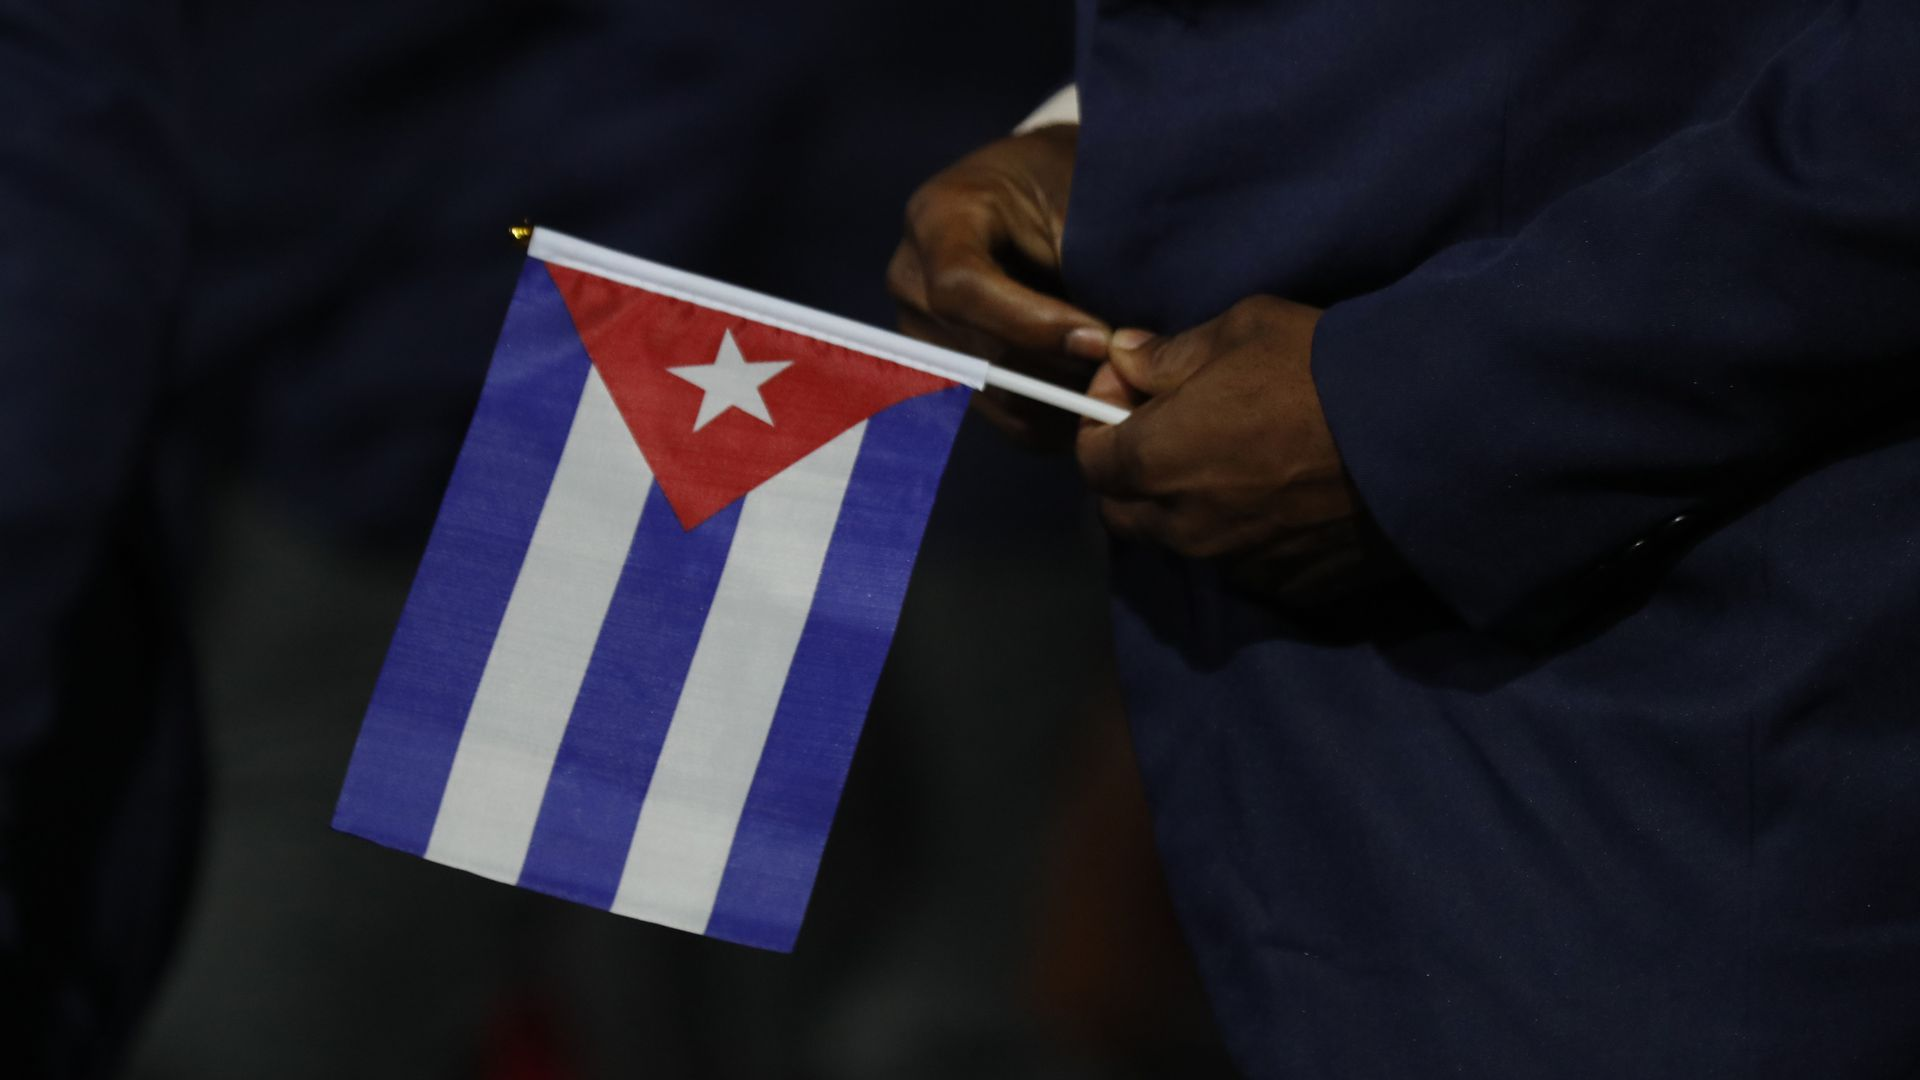 In this image, a man holds a small Cuban flag